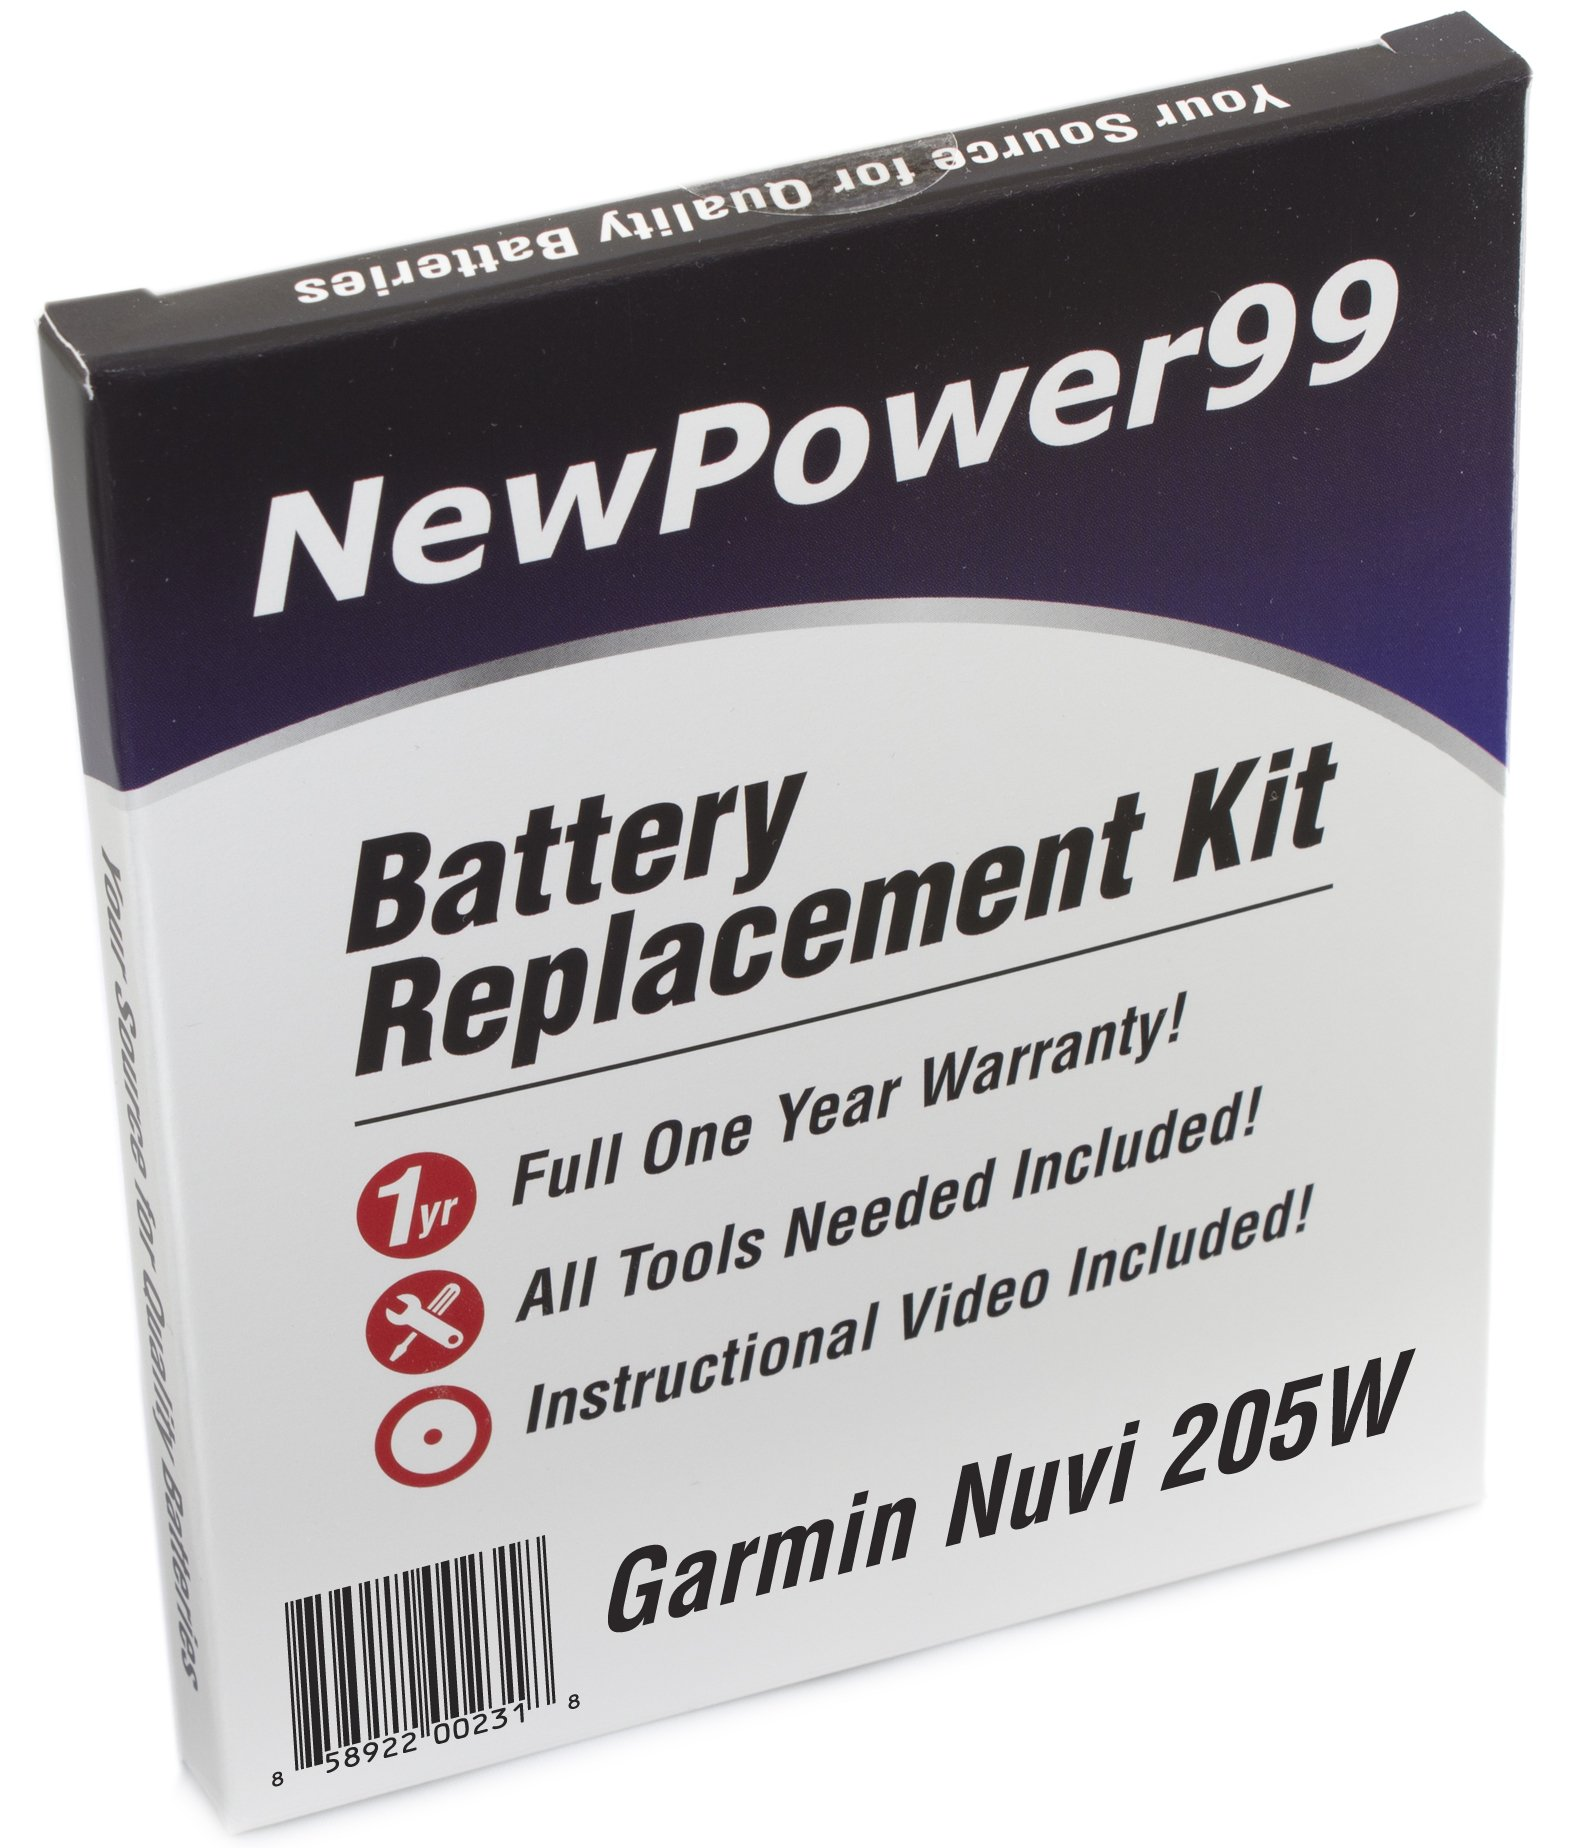 Battery Replacement Kit for Garmin Nuvi 205W with Installation Video, Tools, and Extended Life Battery.